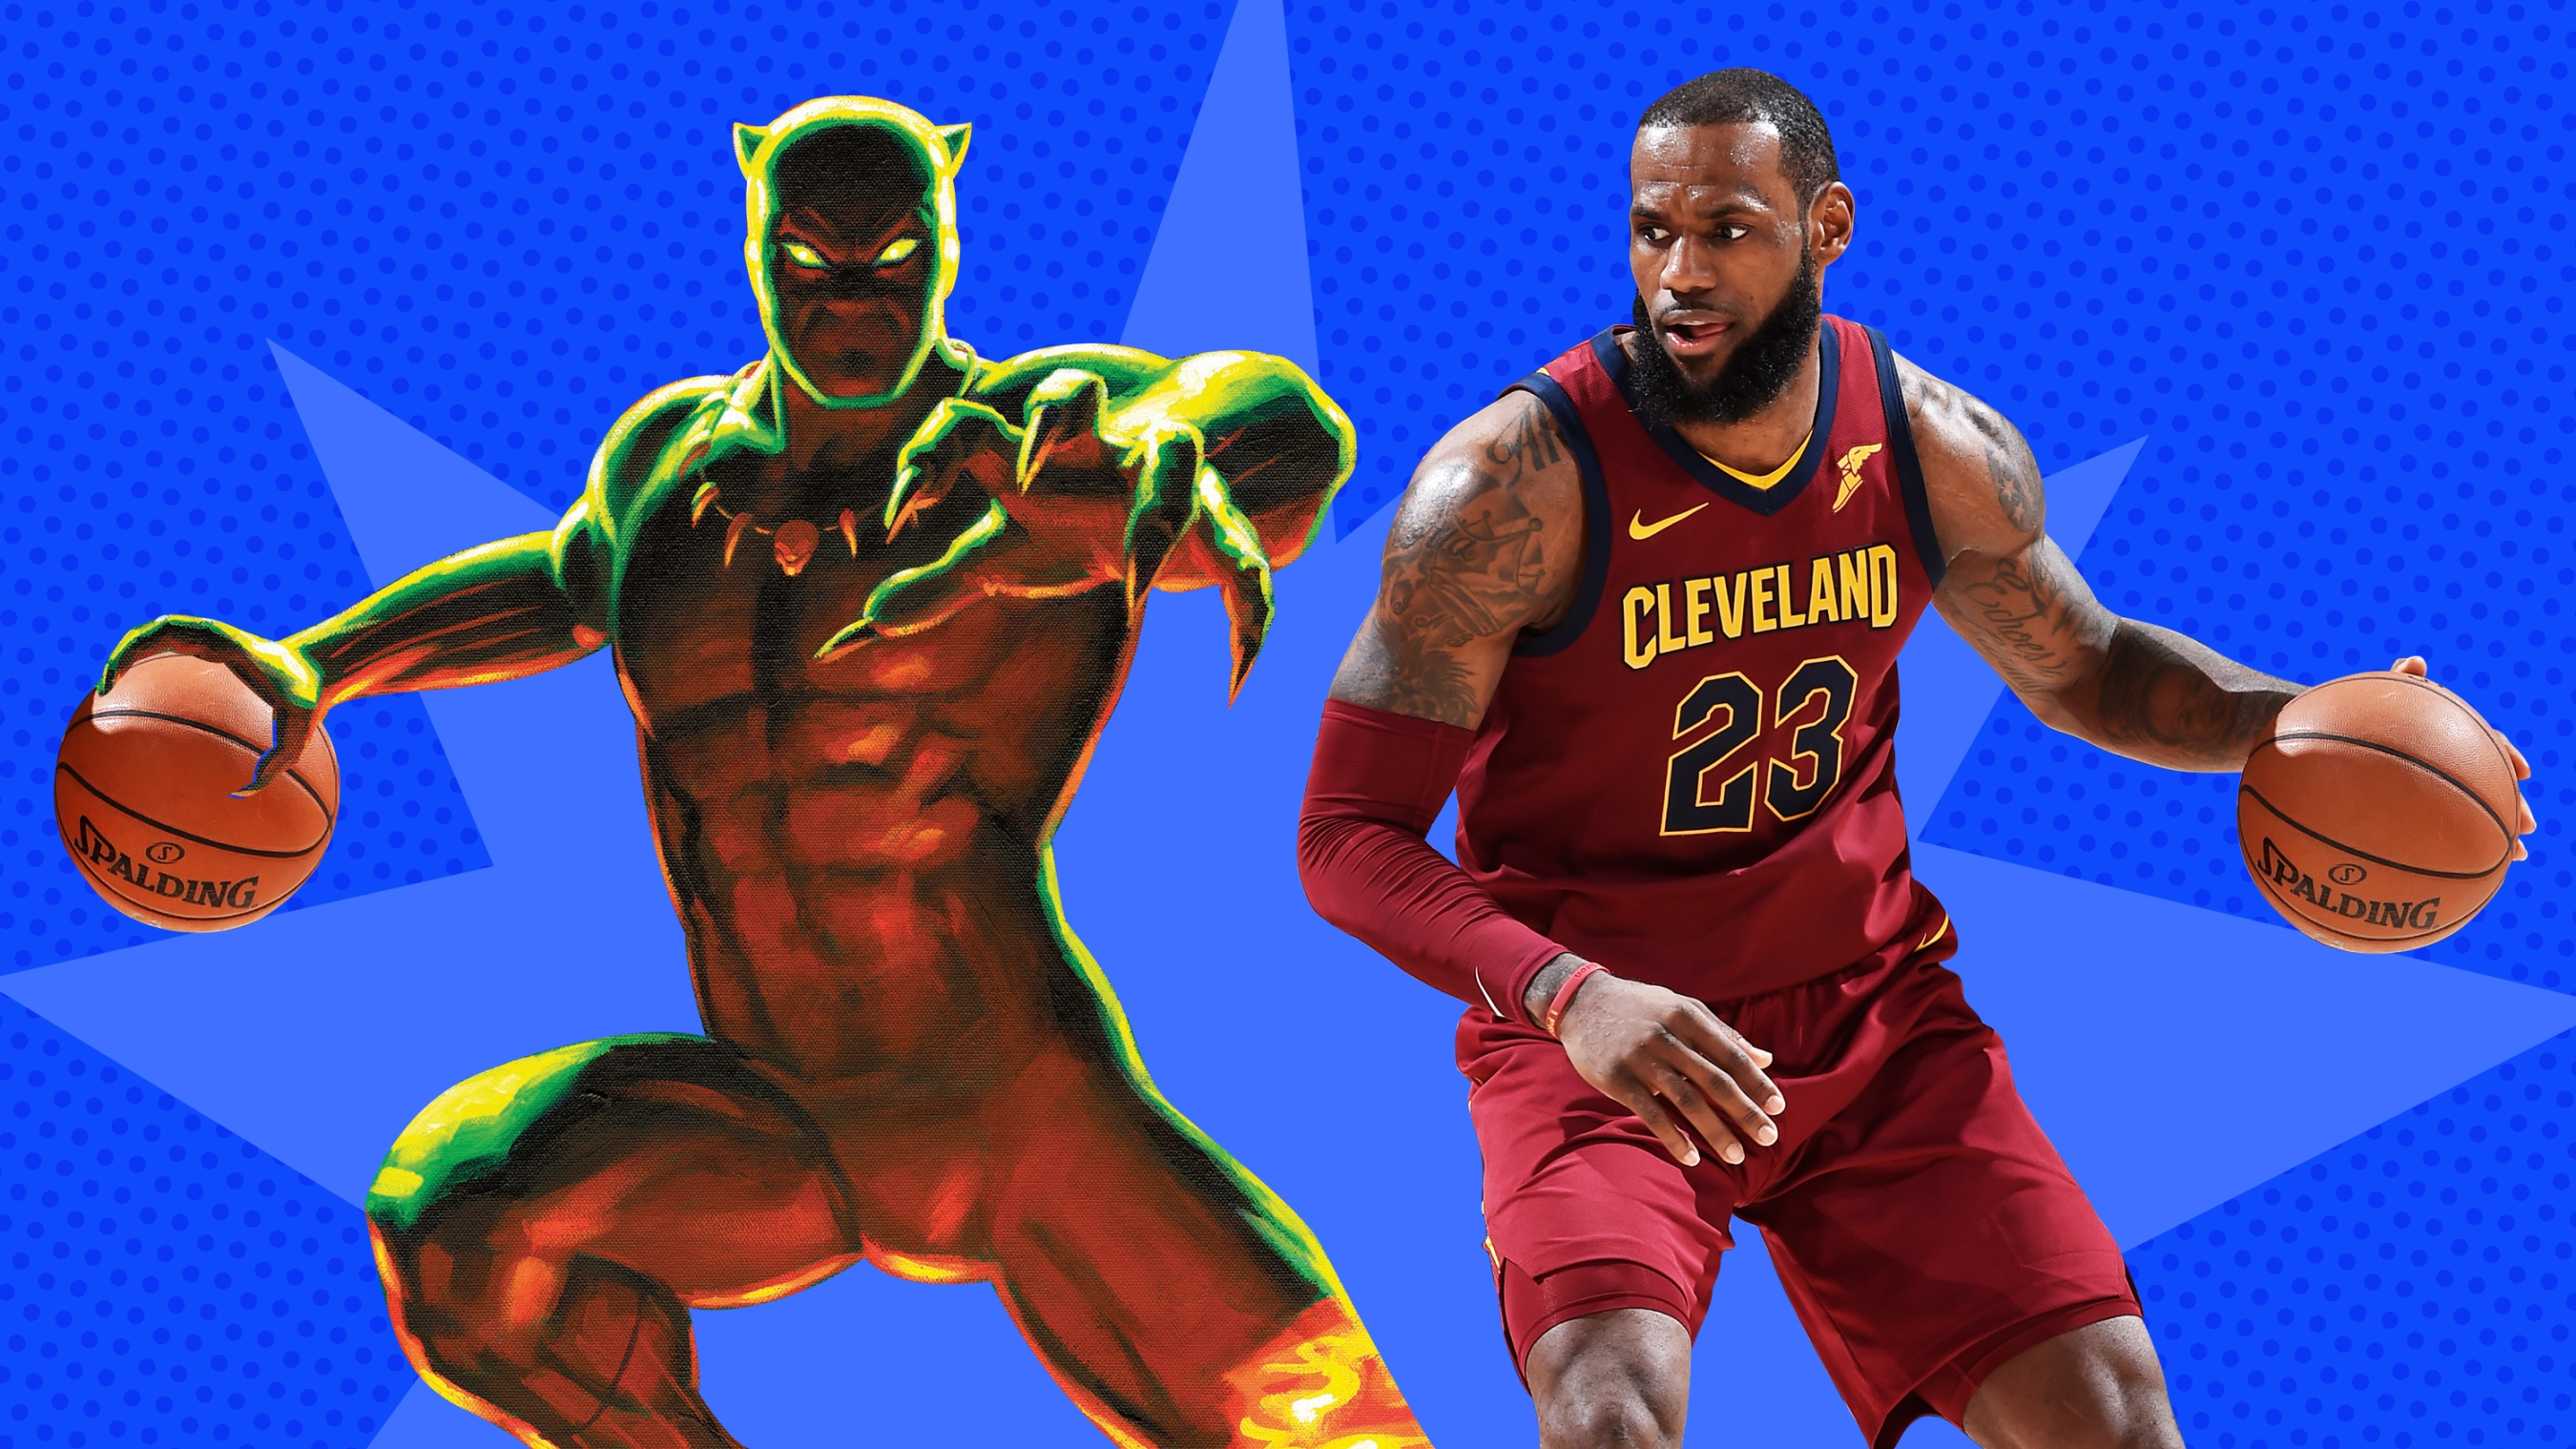 8d817eff82e King James is king of Wakanda as NBA/WNBA players meet their Marvel matches